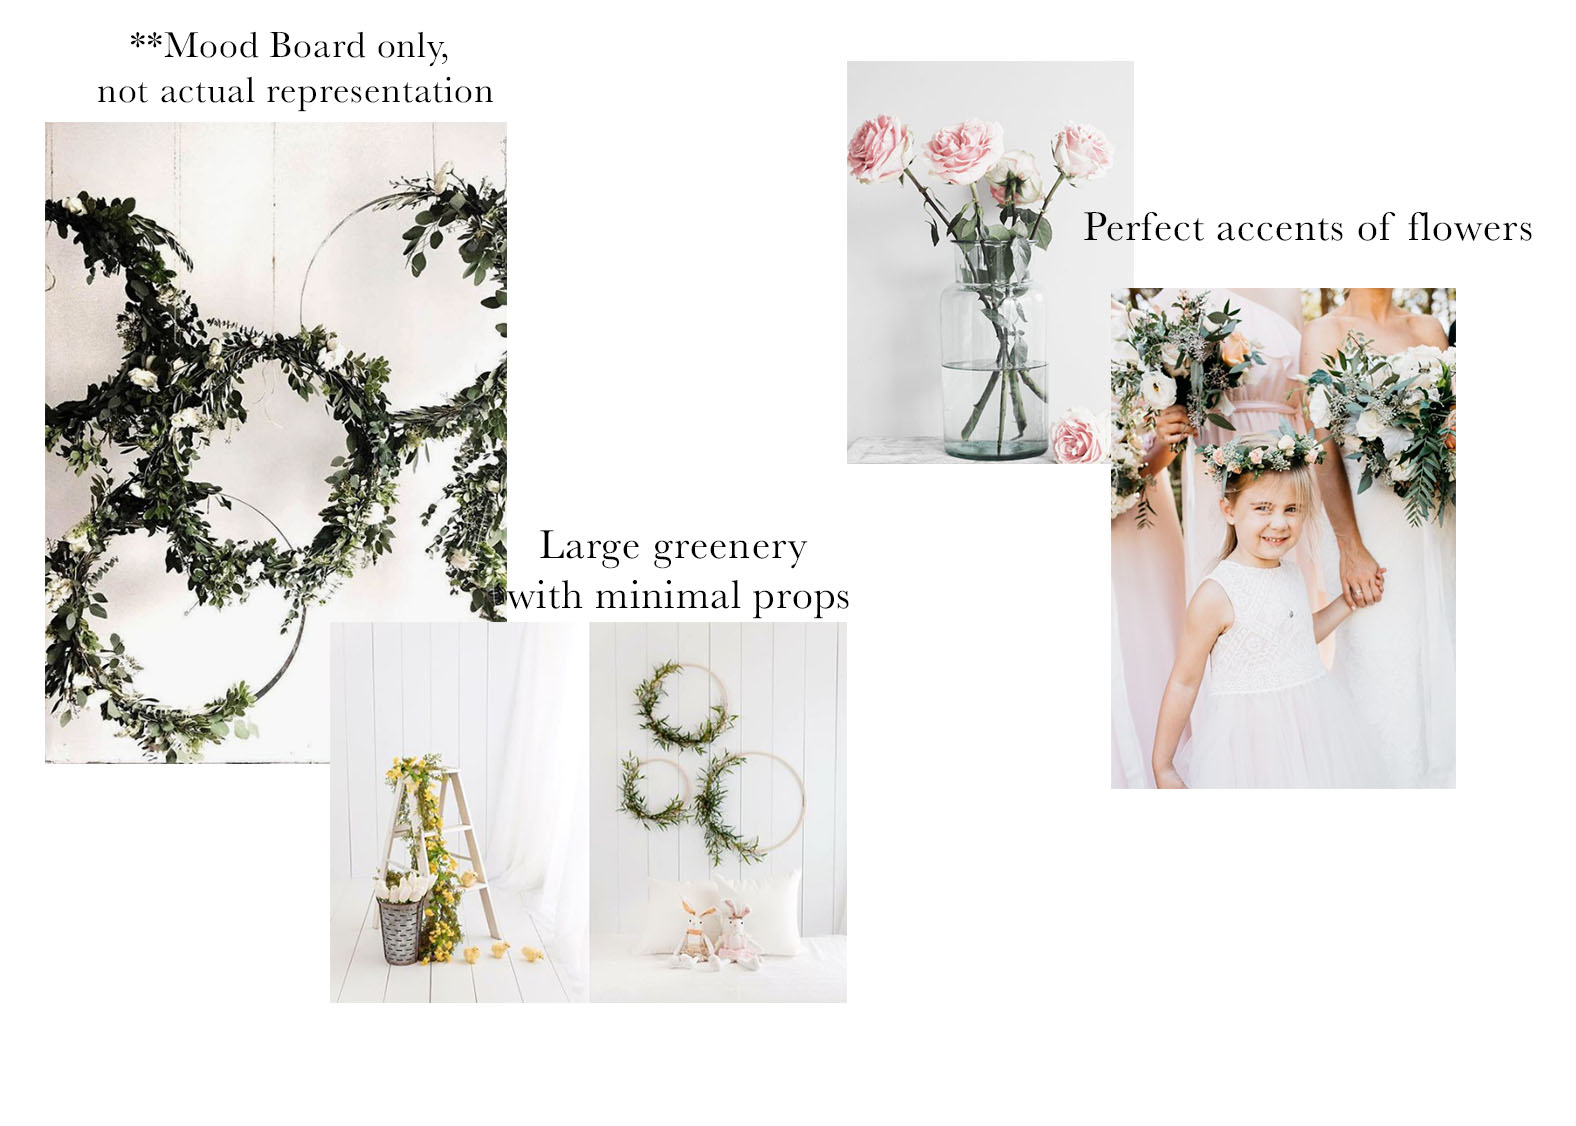 All white Studio Space + Fresh Greenery - Small props such as pillows and roses may be used.